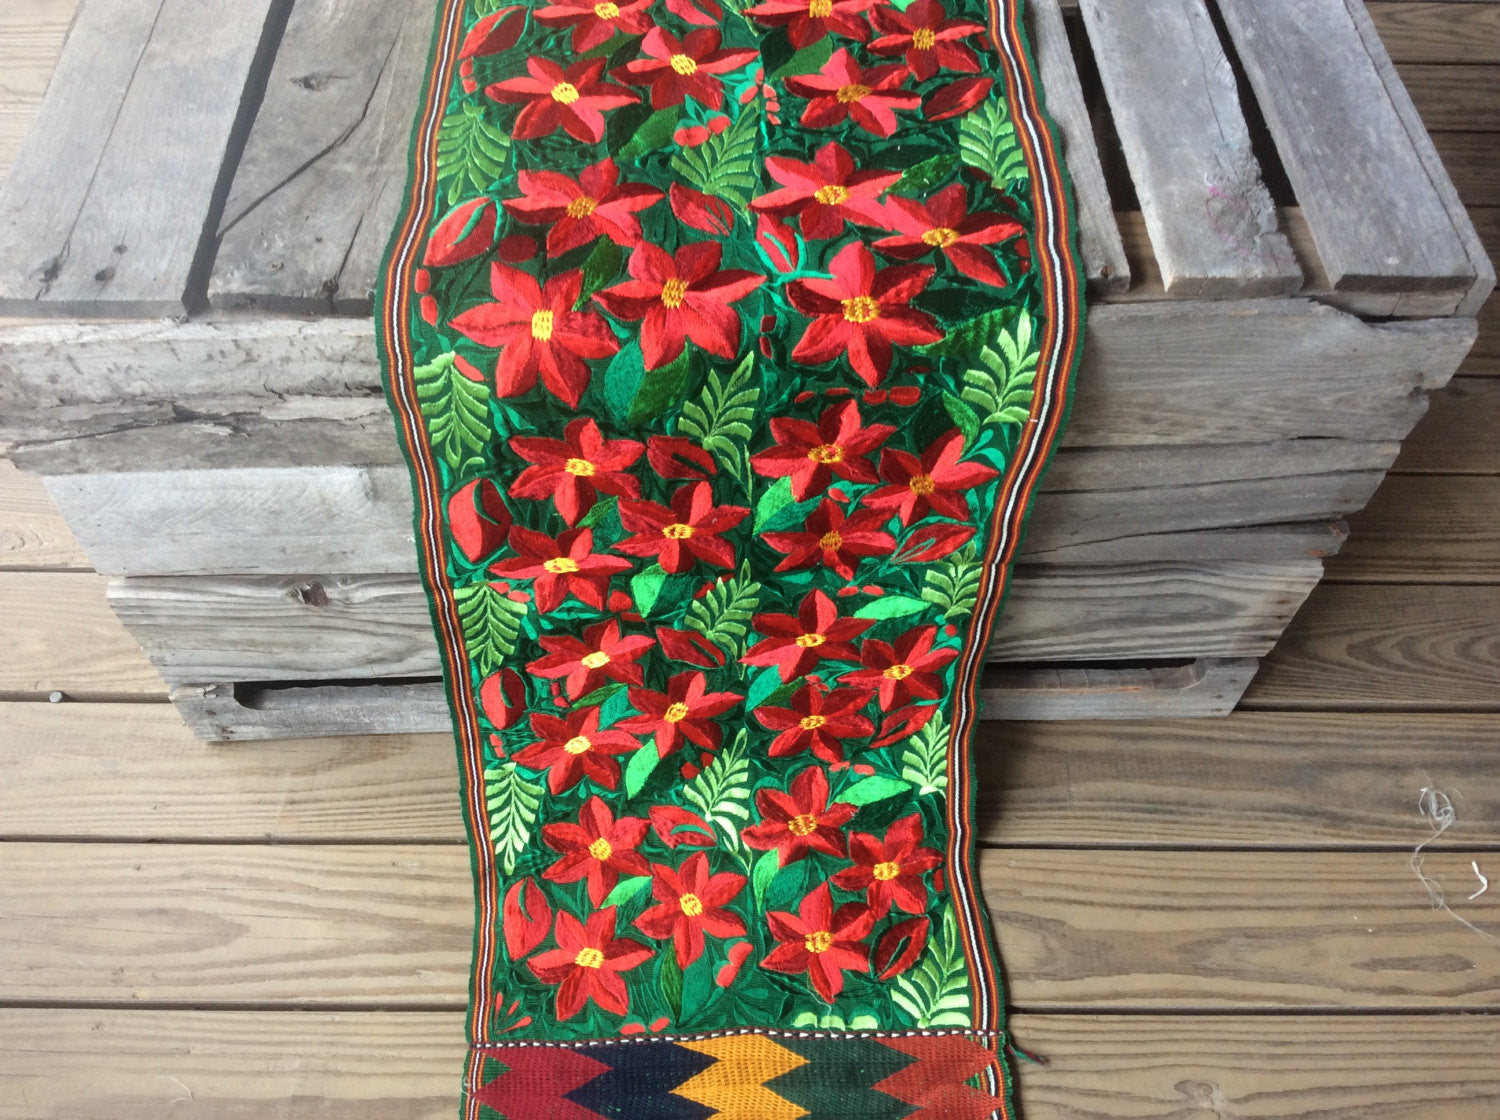 Christmas Table Runner To Make.Beautiful Woven Christmas Table Runner Gorgeous Poinsettias Make A Wow Statement